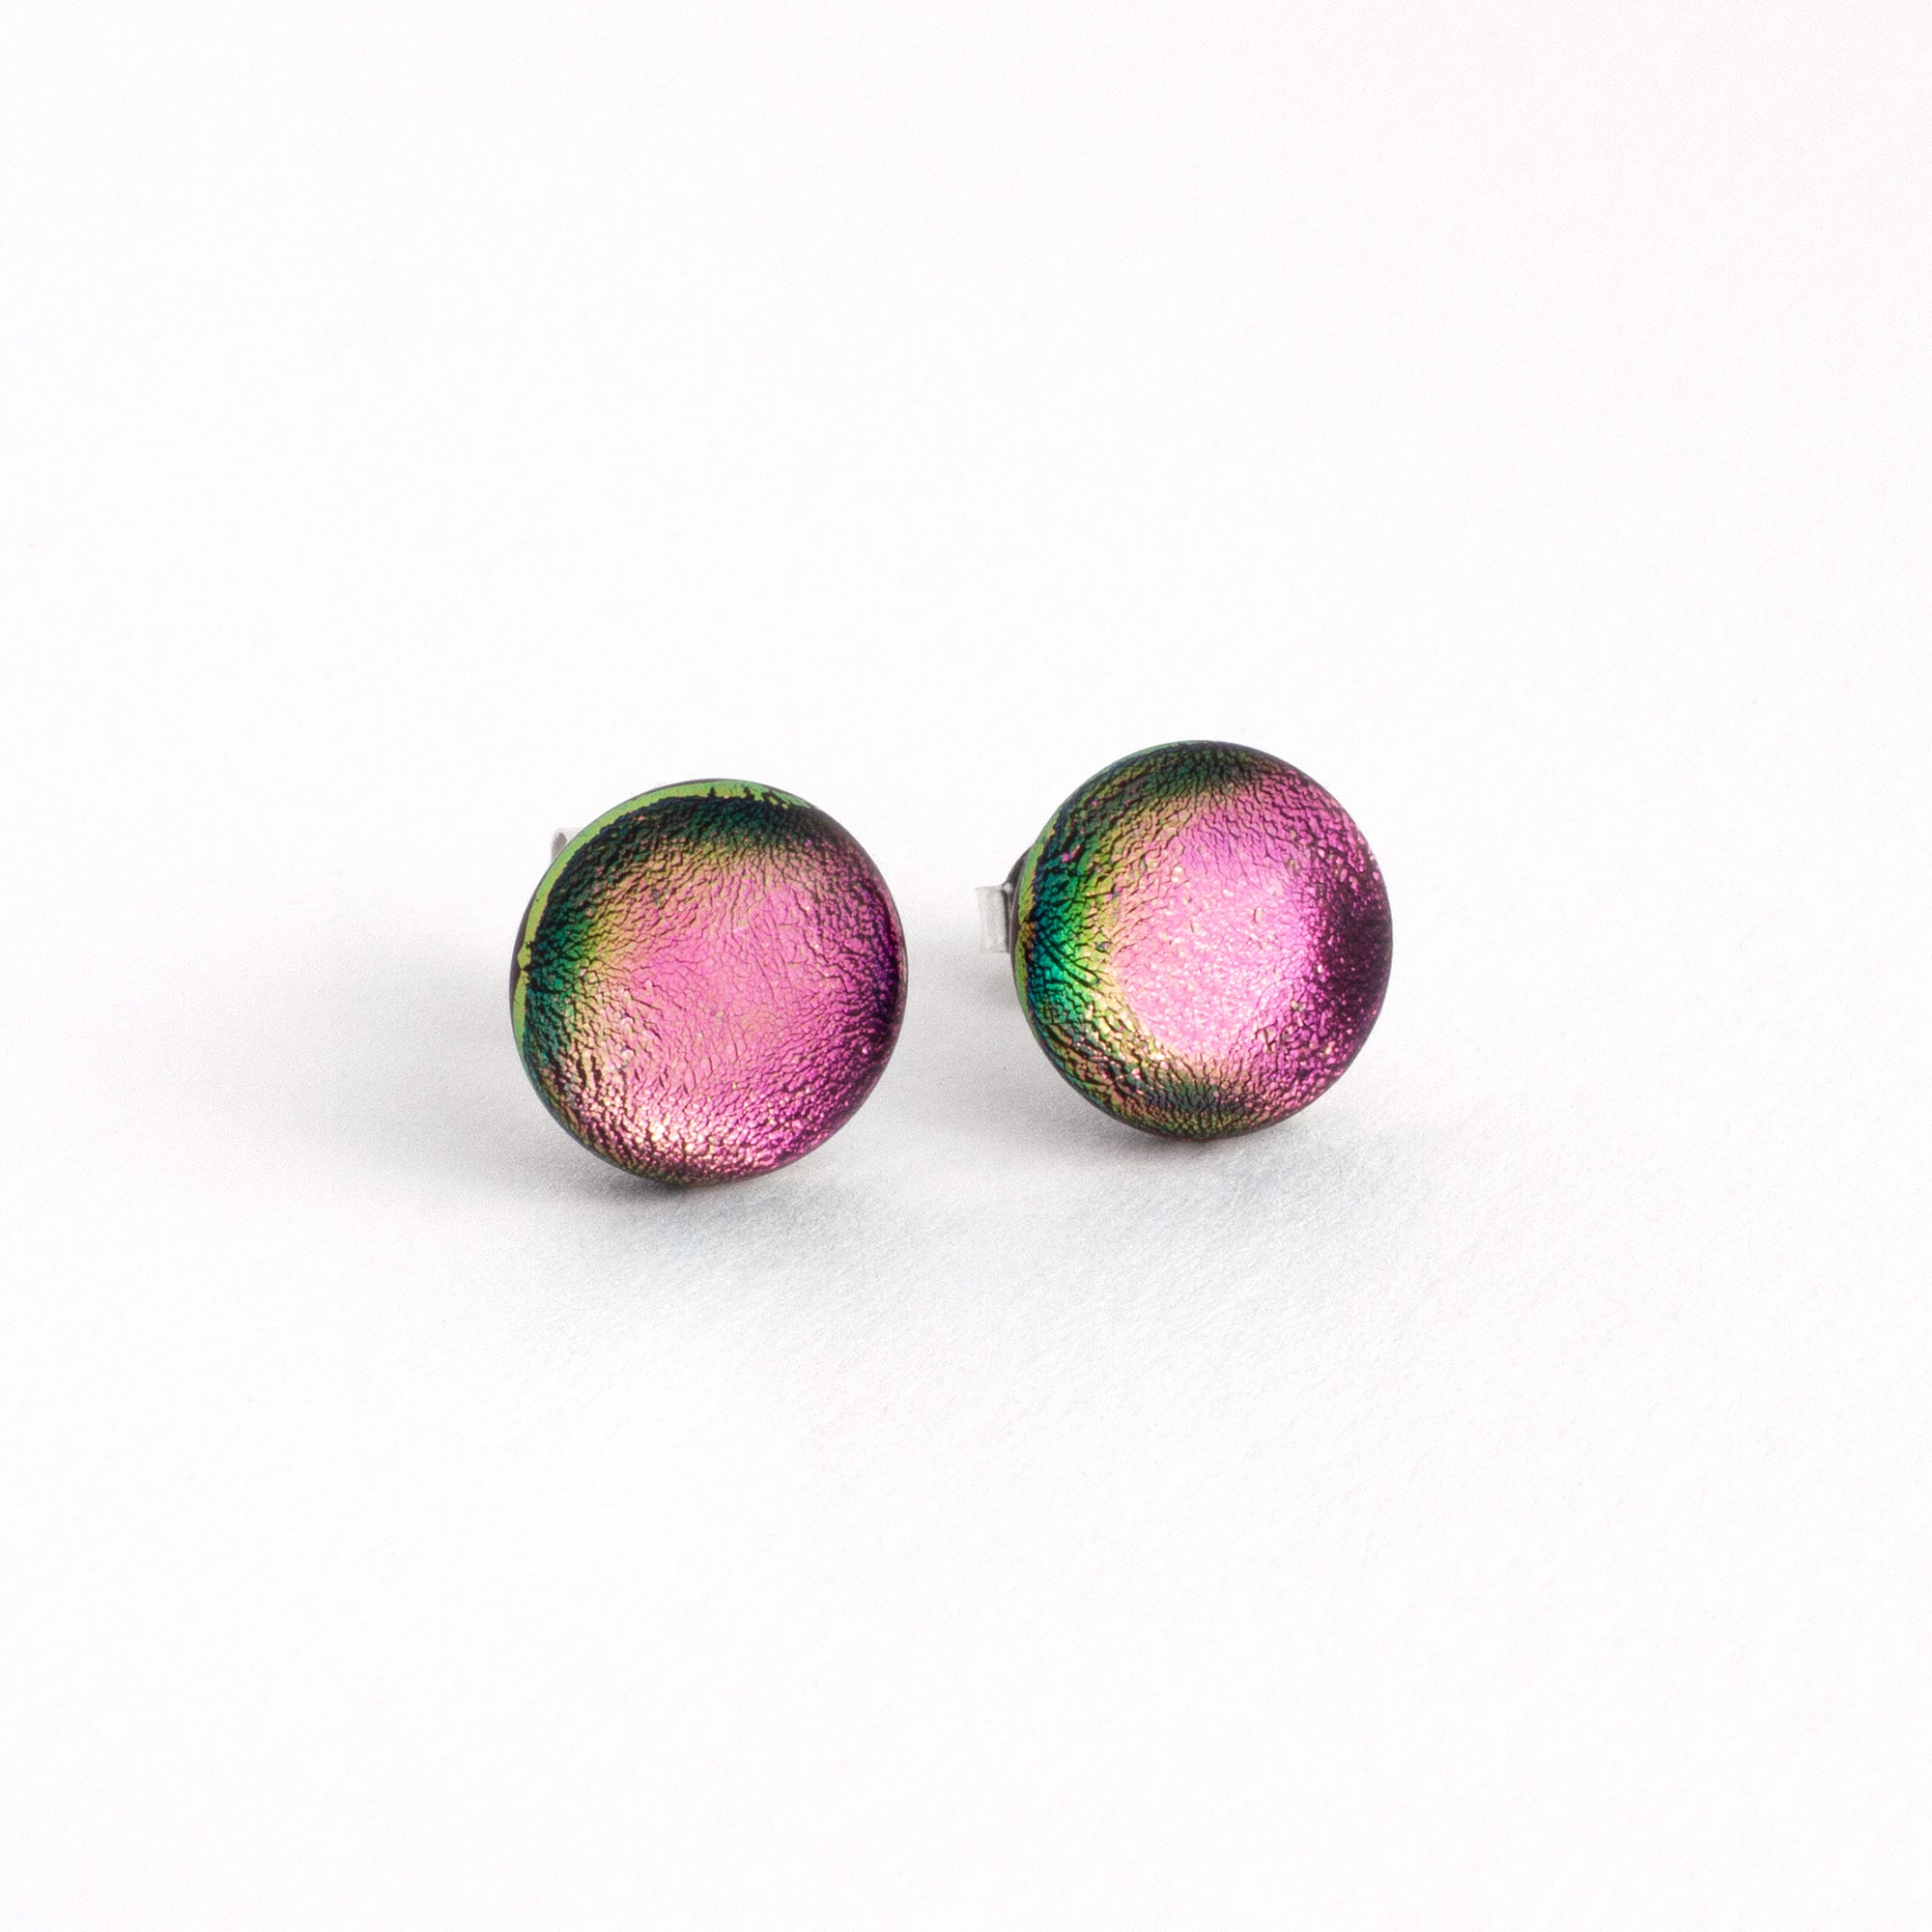 Dikhroos Pink Mini Earrings